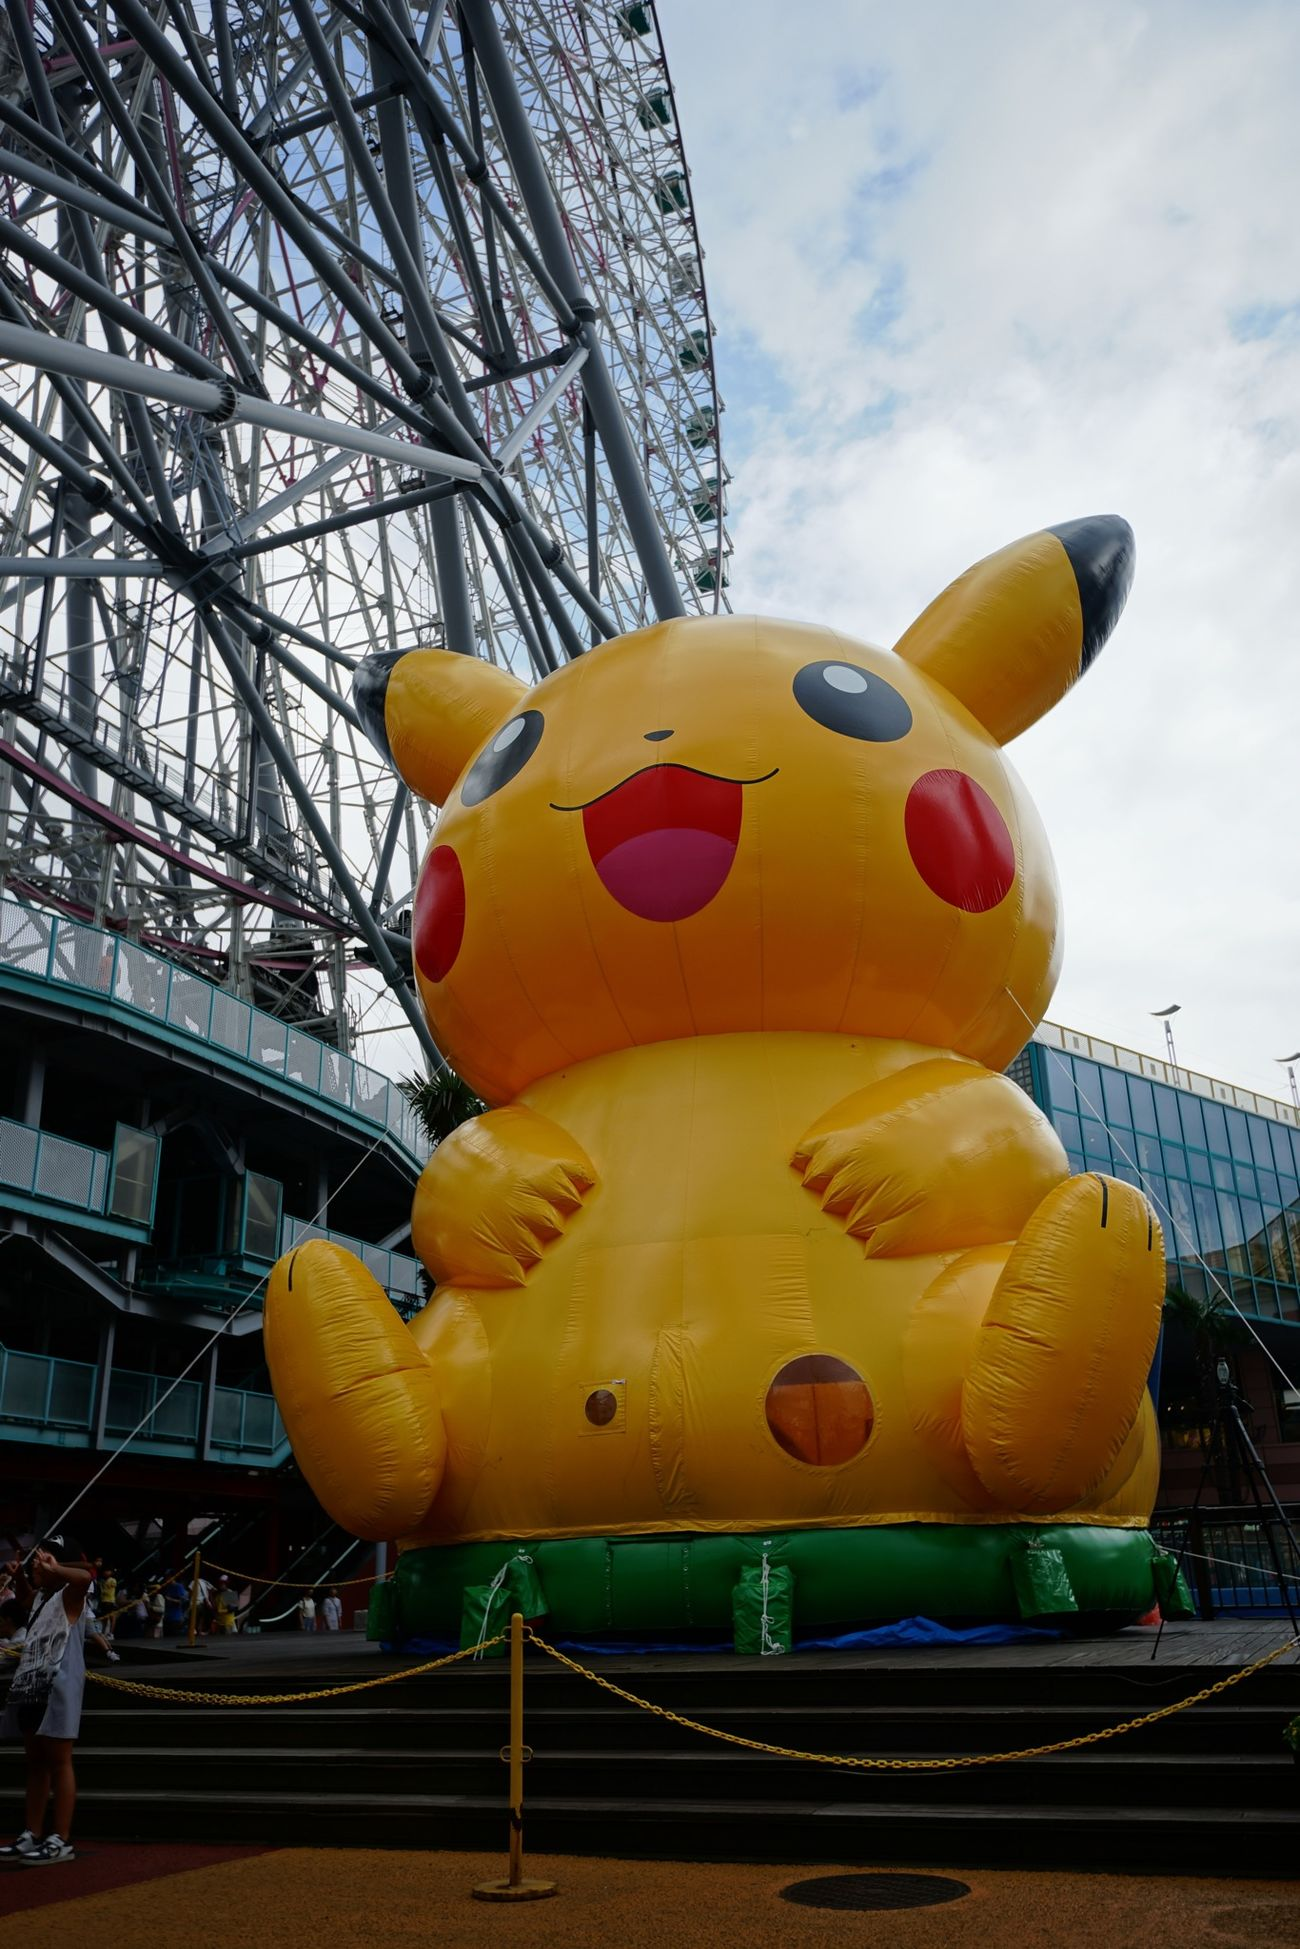 Pokémon Pikachu and Ferris Wheel